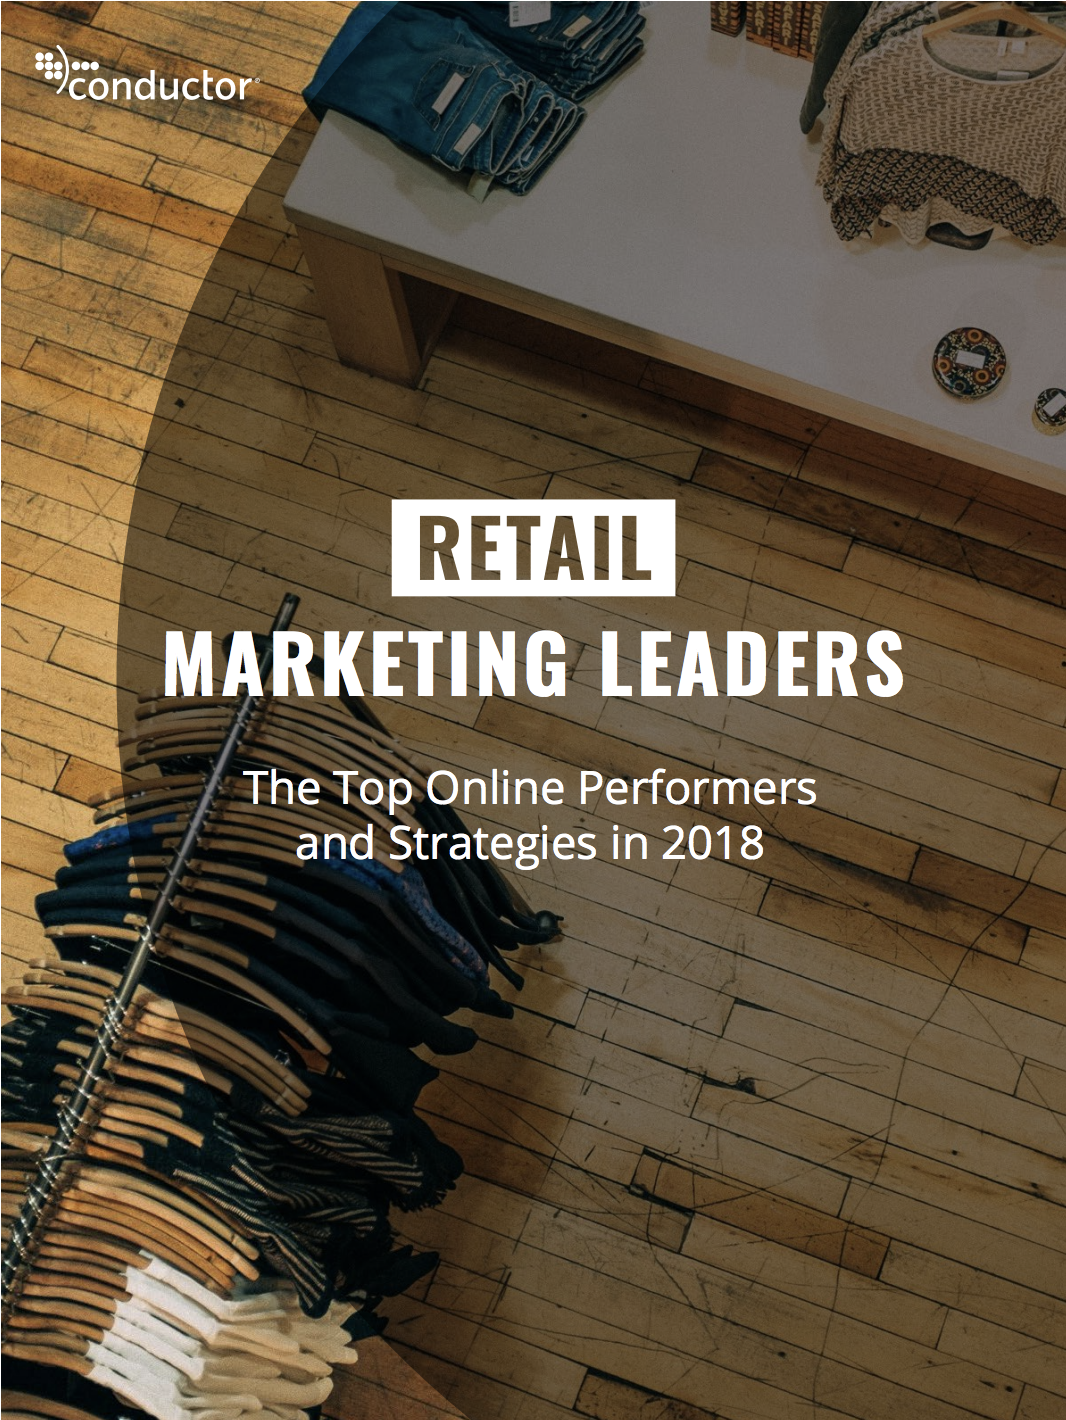 The Retail Marketing Trend Report 2018 features the top online performers and strategies for the year.